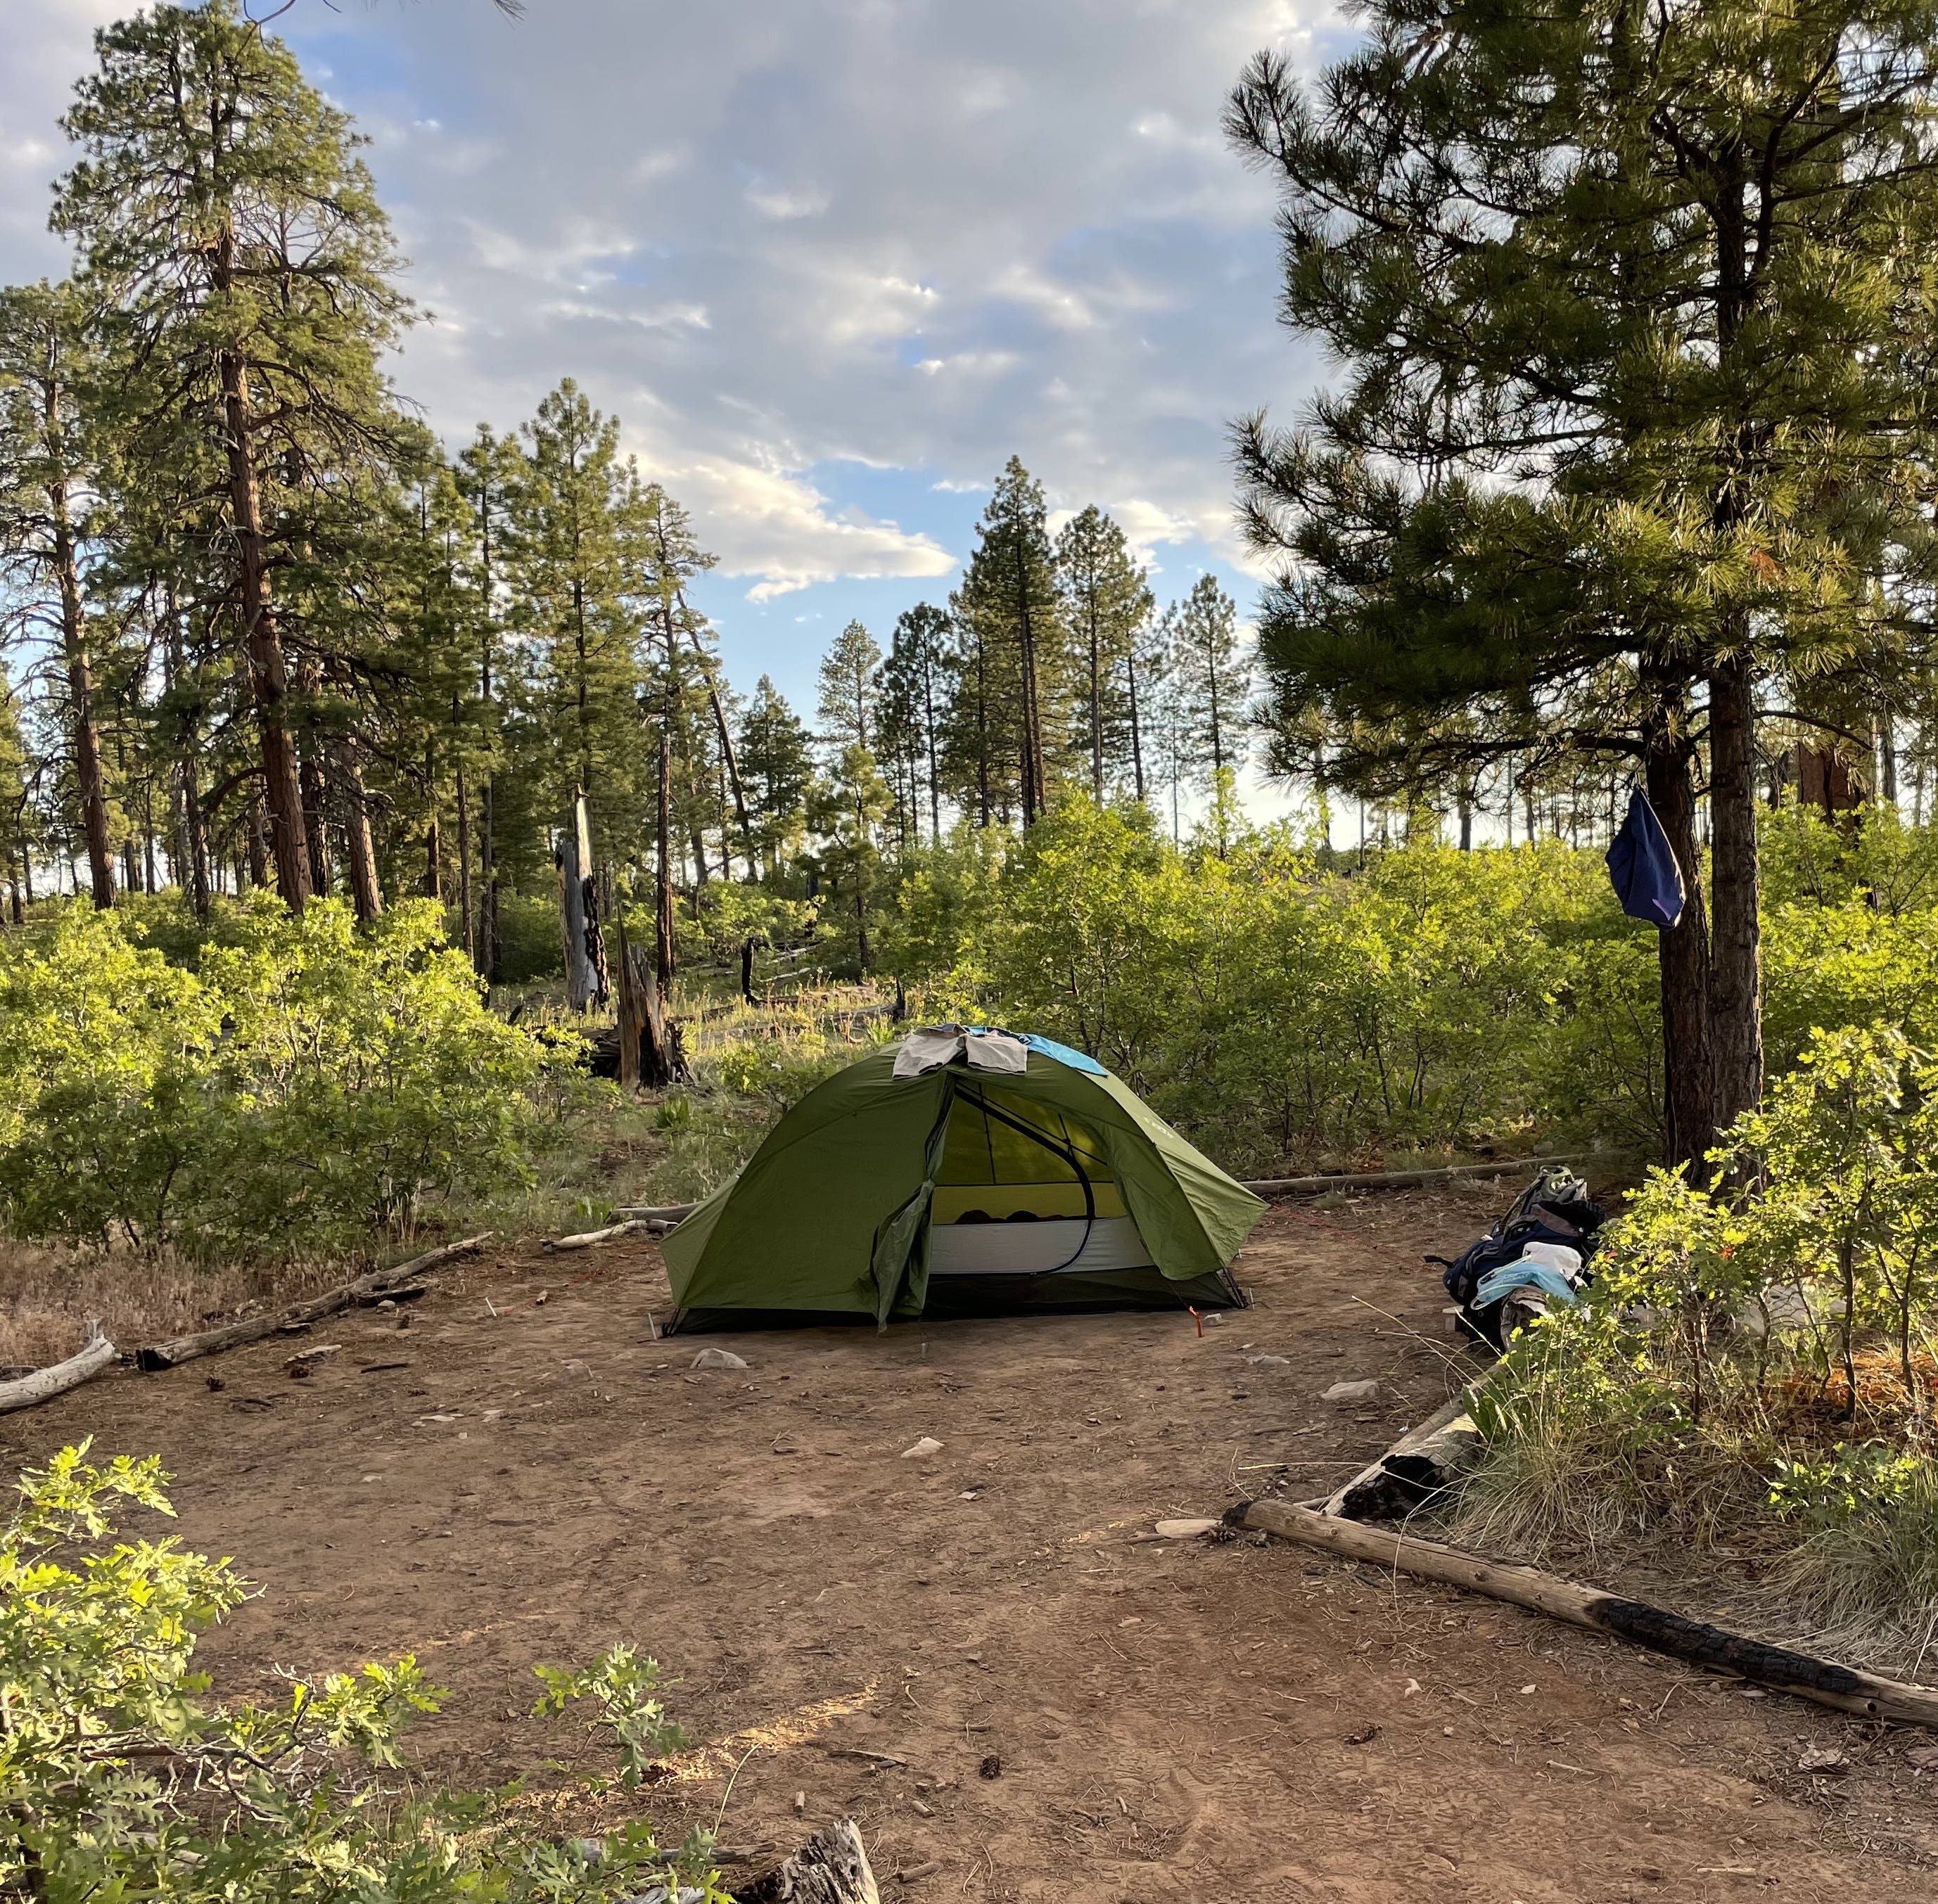 Green tent set up at primitive backpacking campsite on the West Rim at Zion National Park.